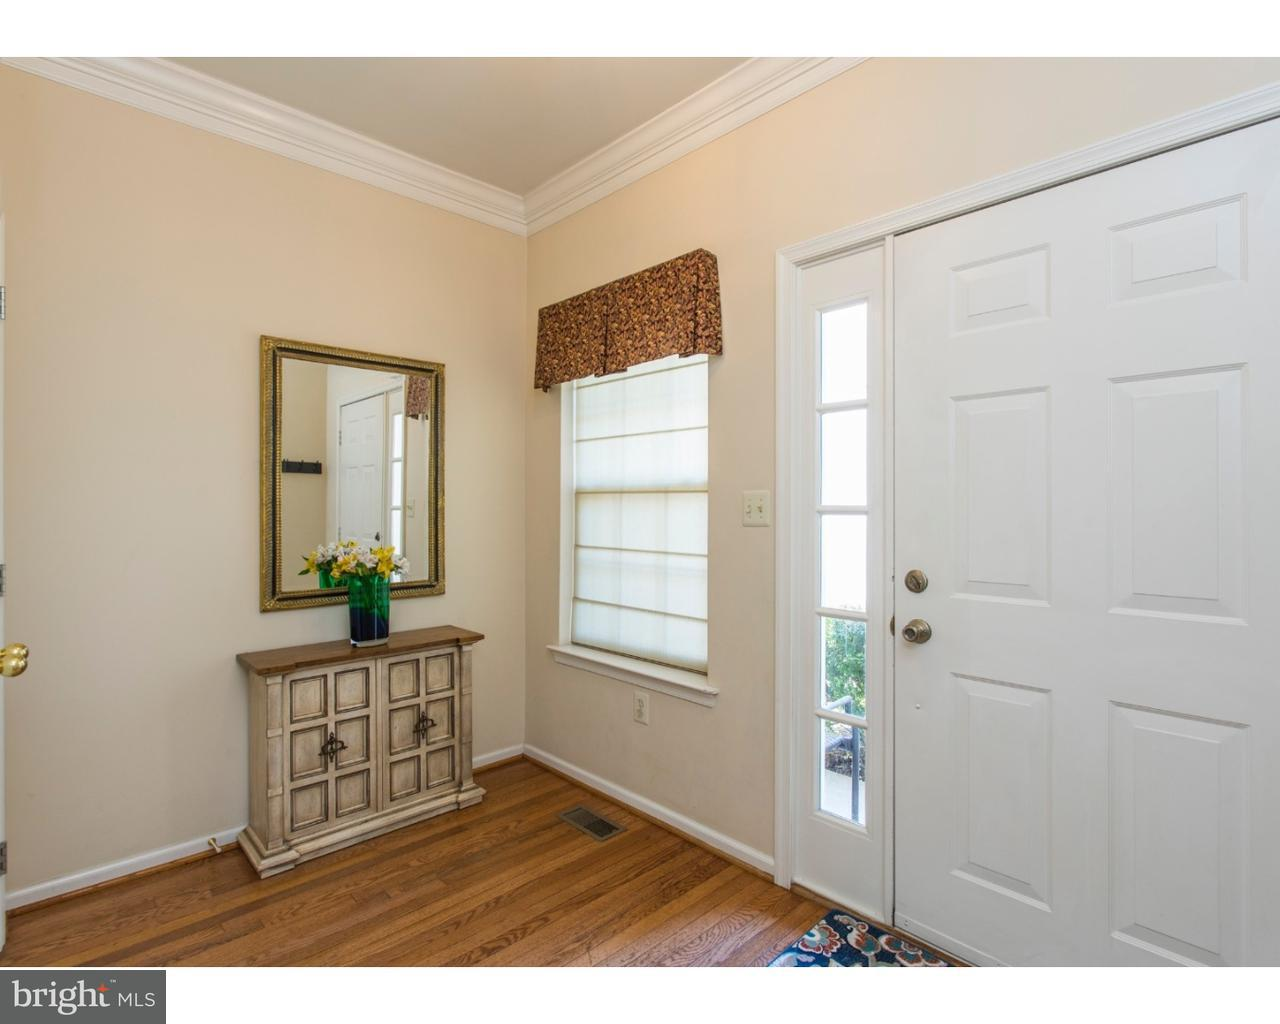 108 ASHLEY WAY, PLYMOUTH MEETING - Listed at $375,000, PLYMOUTH MEETING